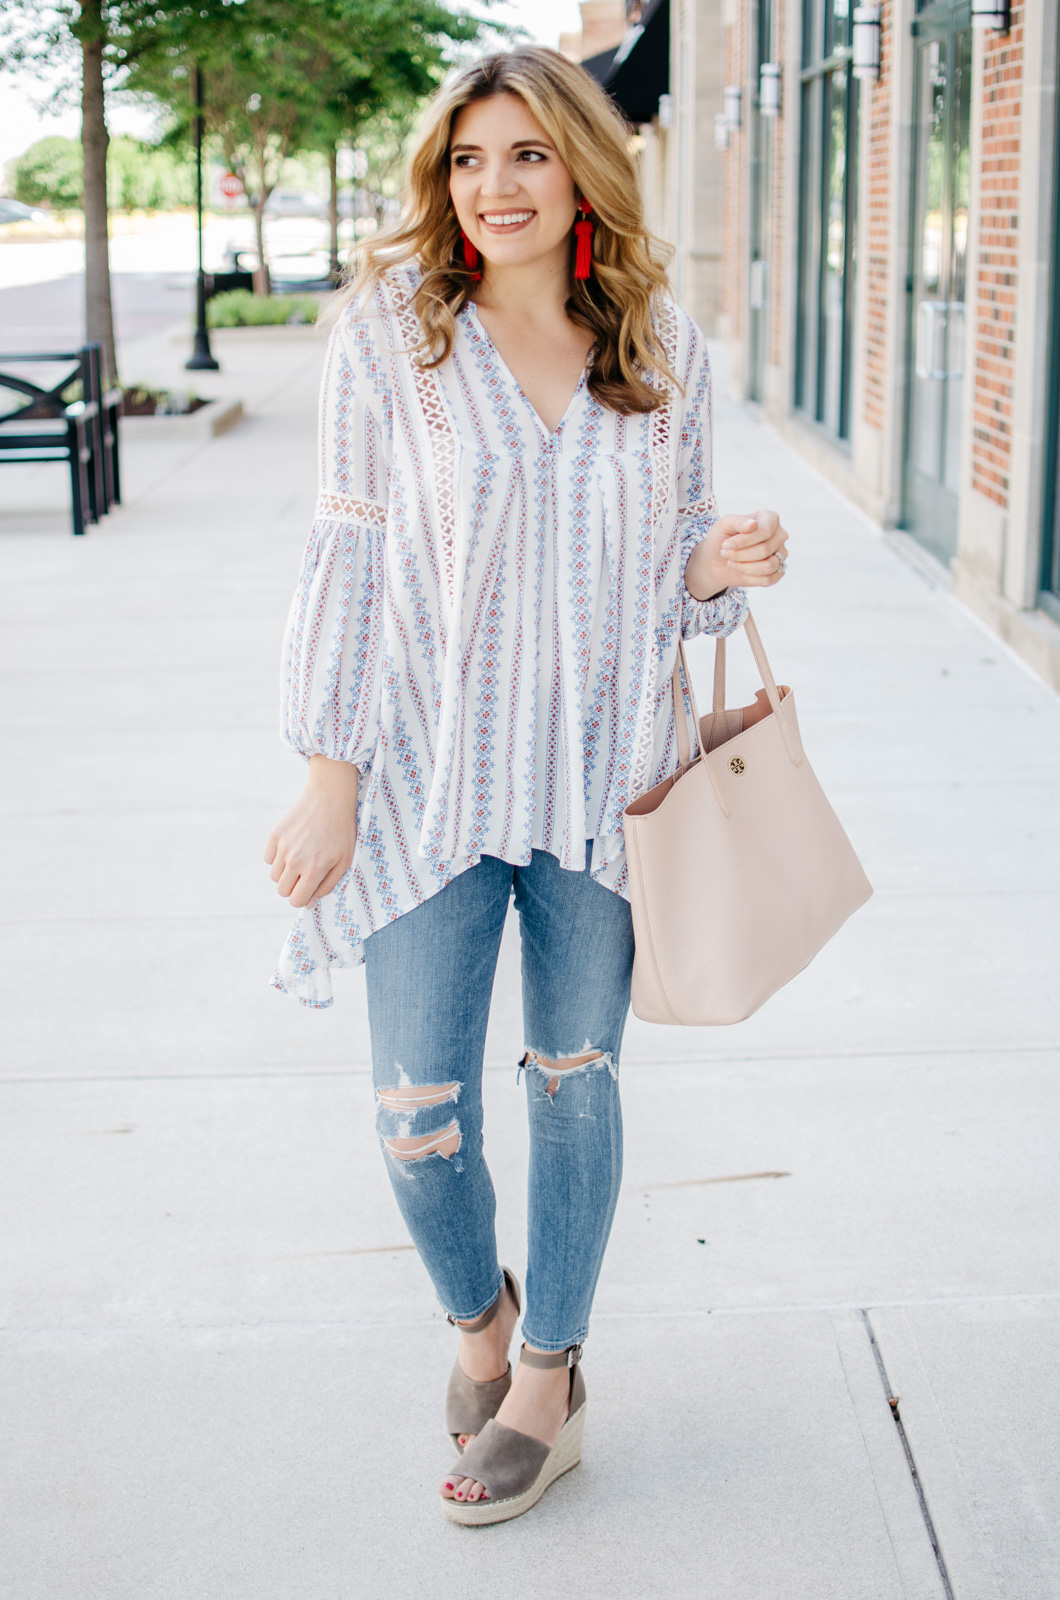 boho outfit ideas - perfect boho top | For more cute outfit ideas, head to bylaurenm.com